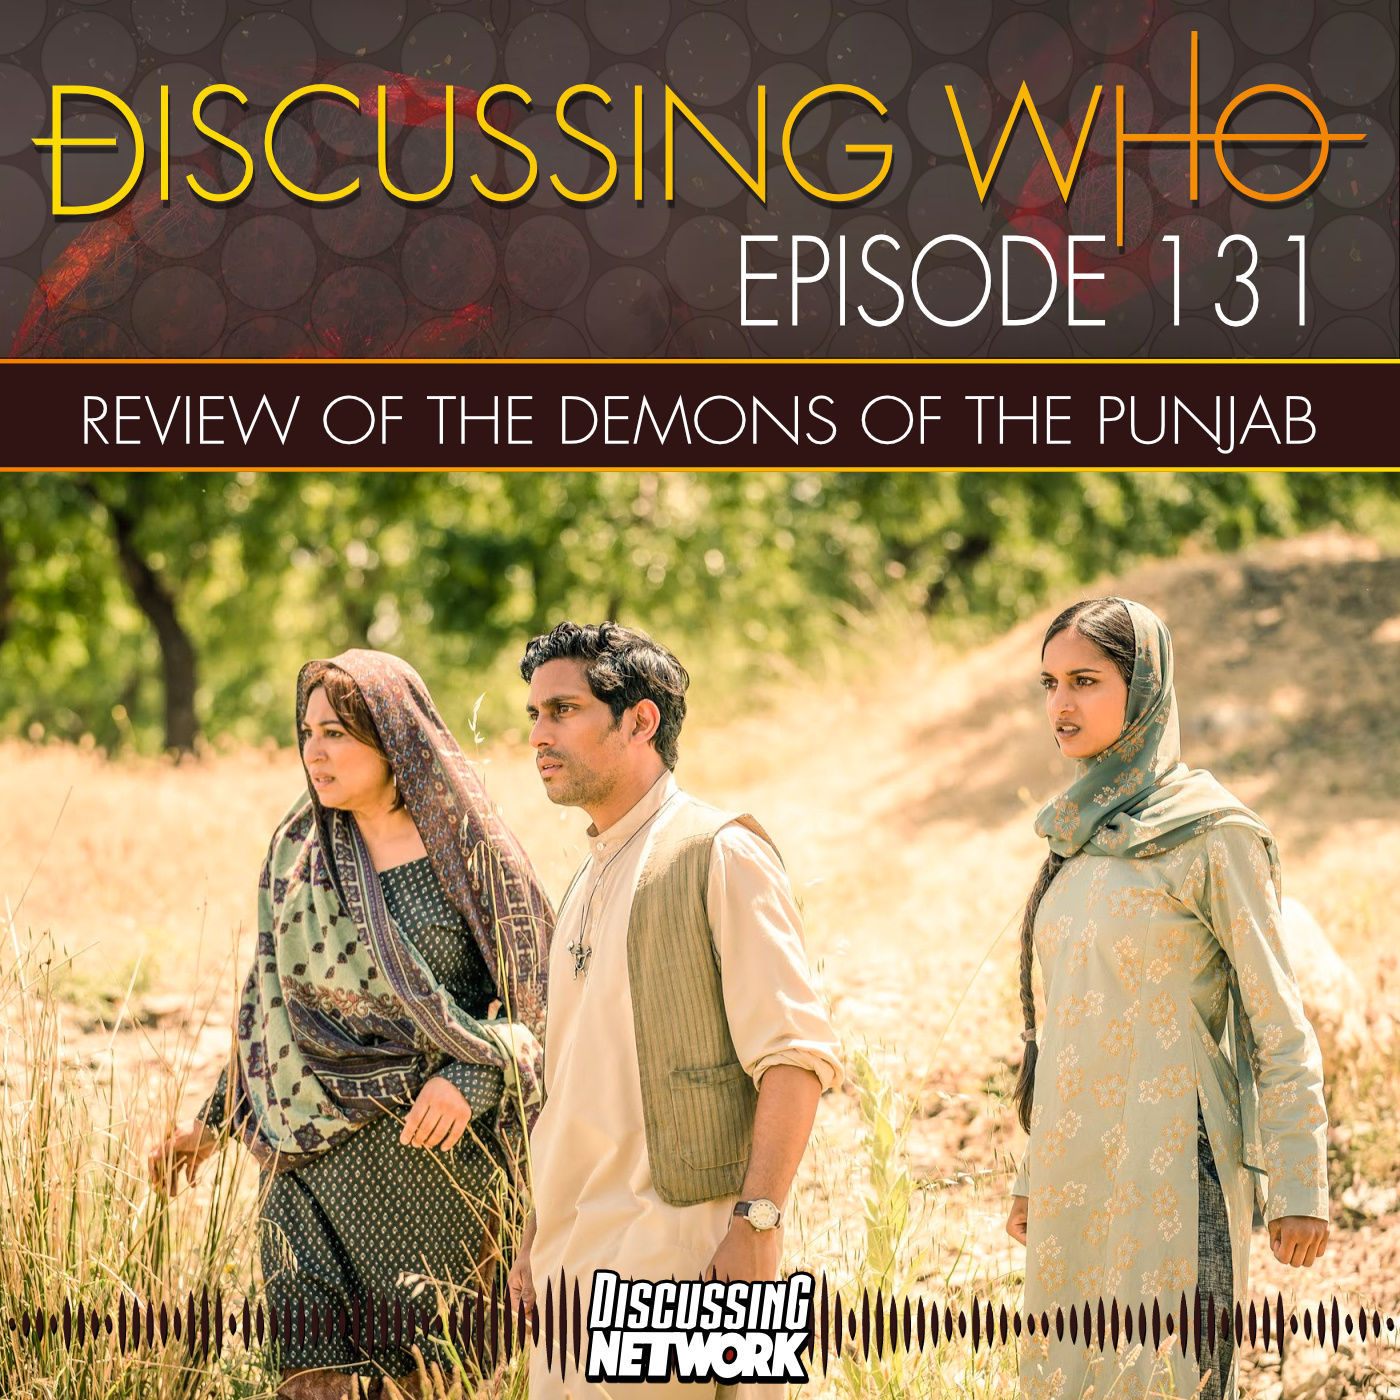 Discussing Who Episode 131